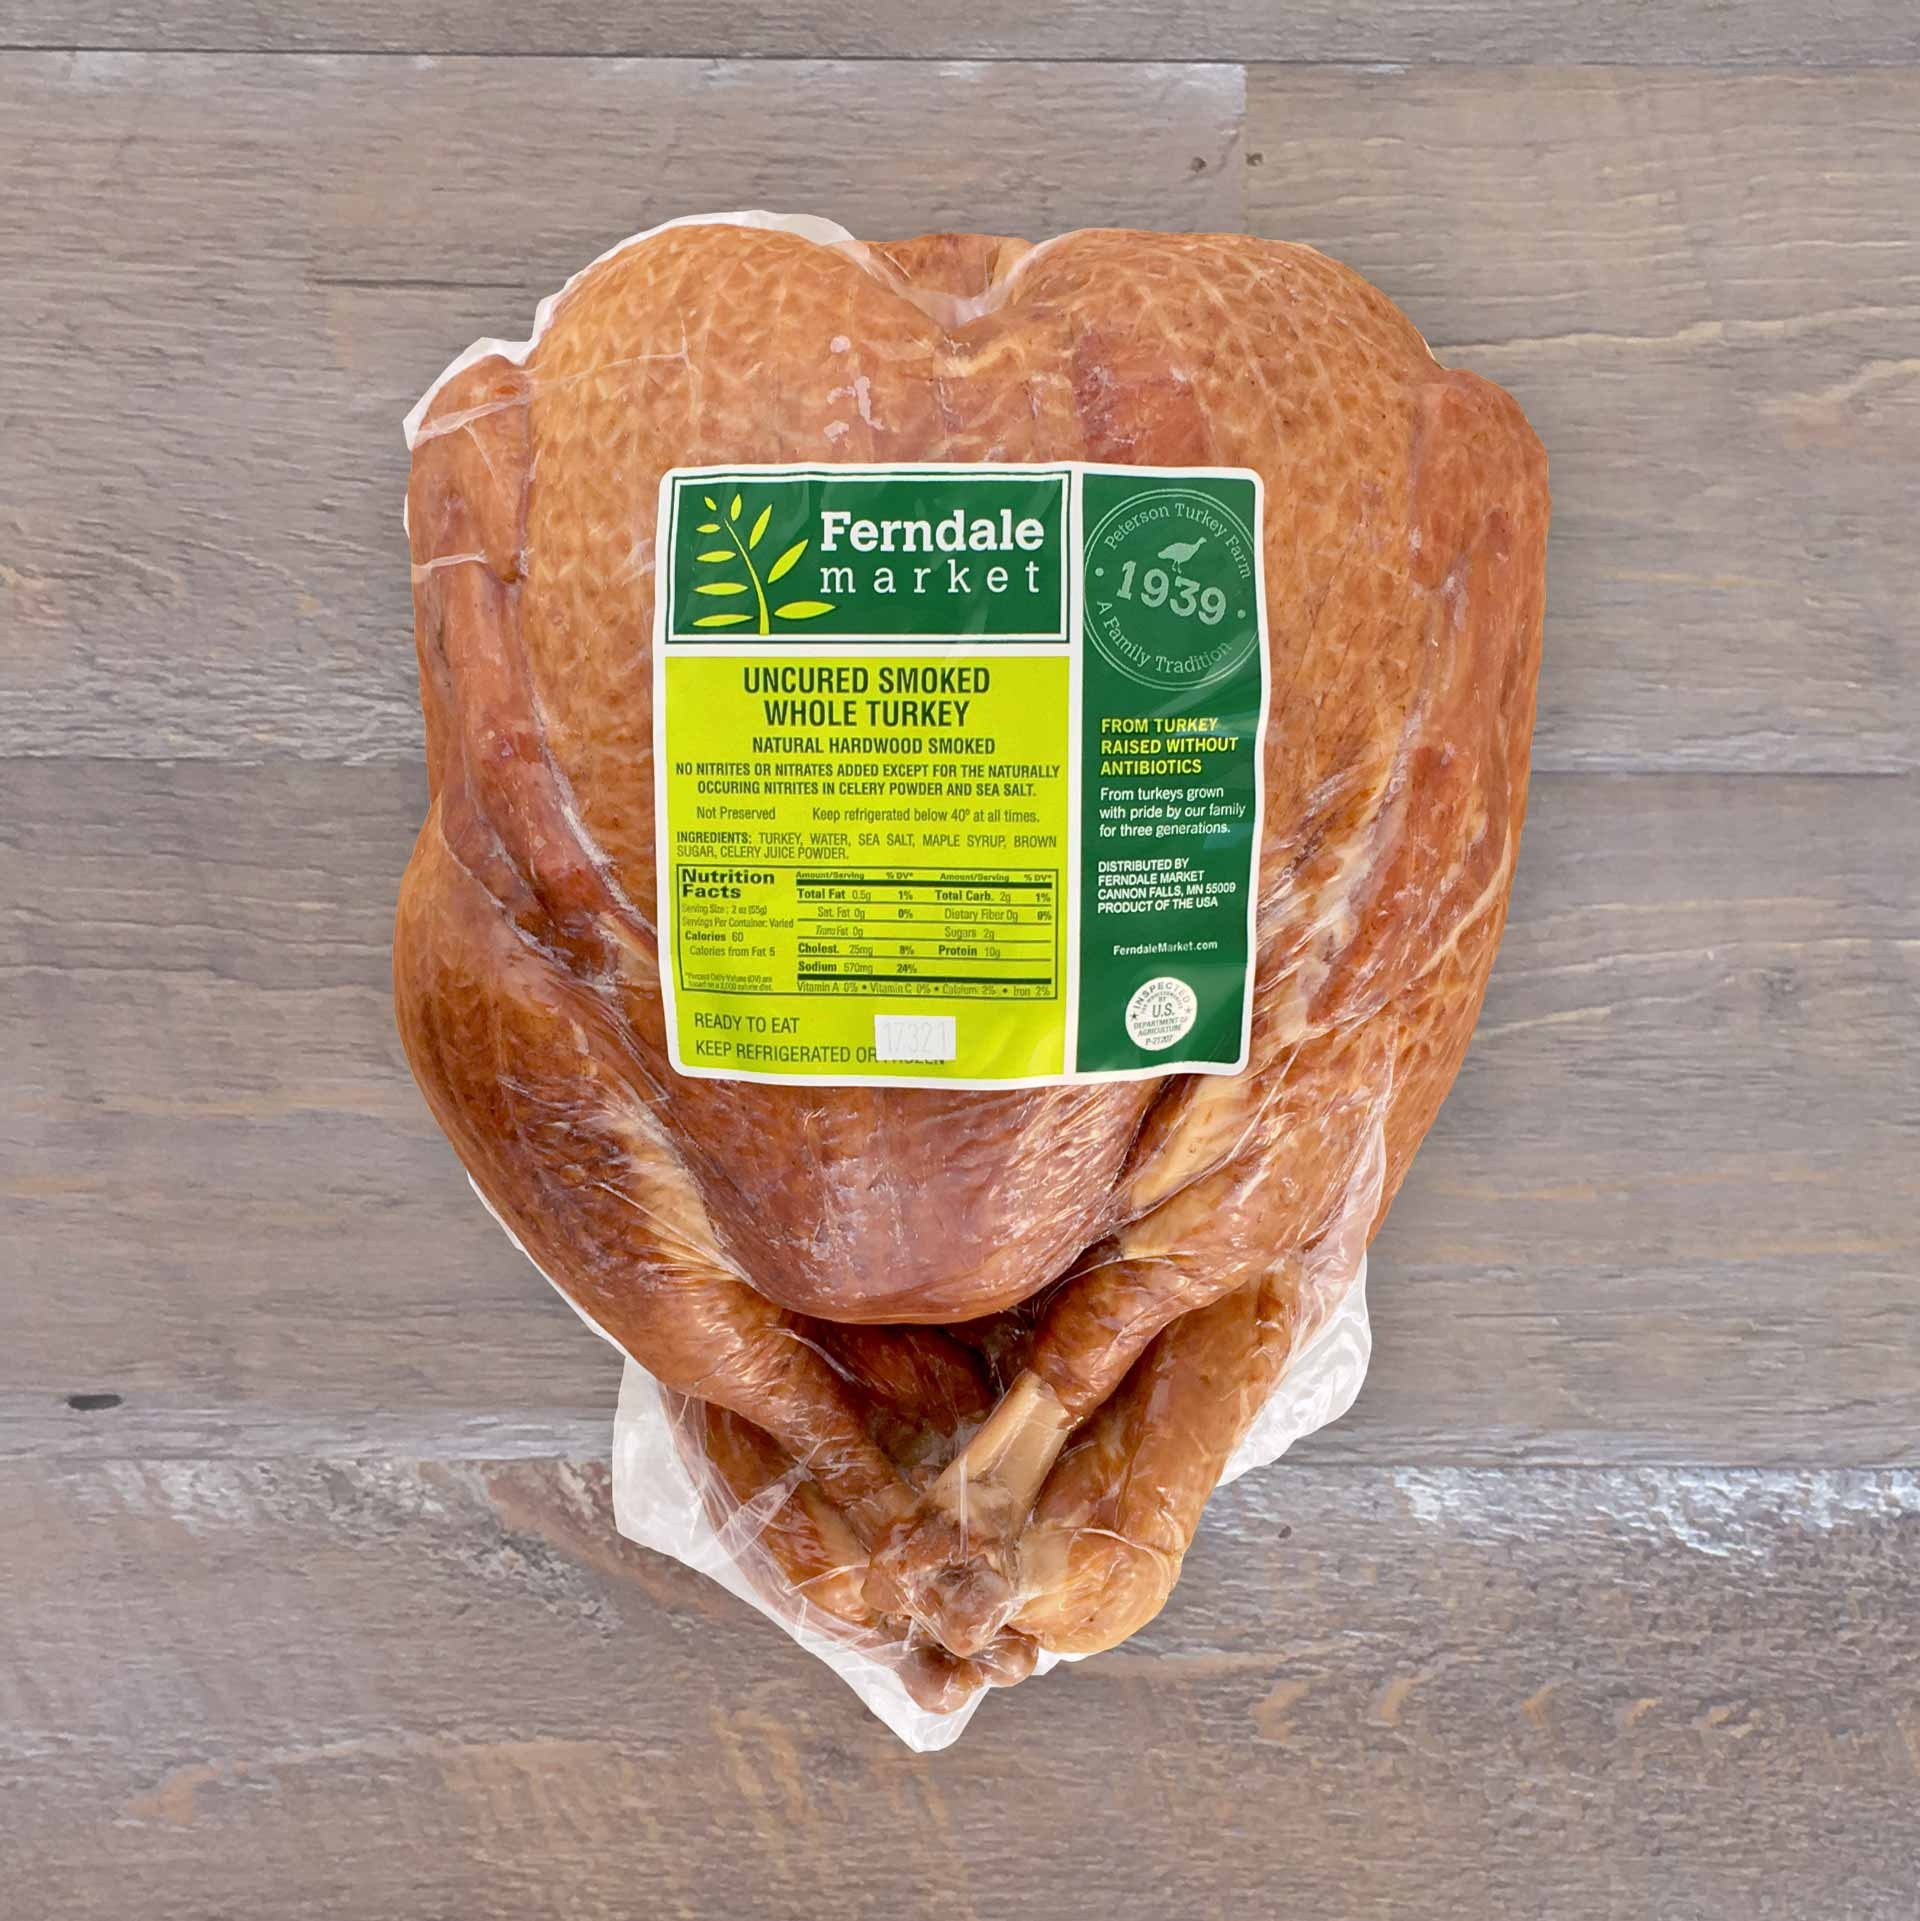 Smoked Whole Turkey | Ferndale Market